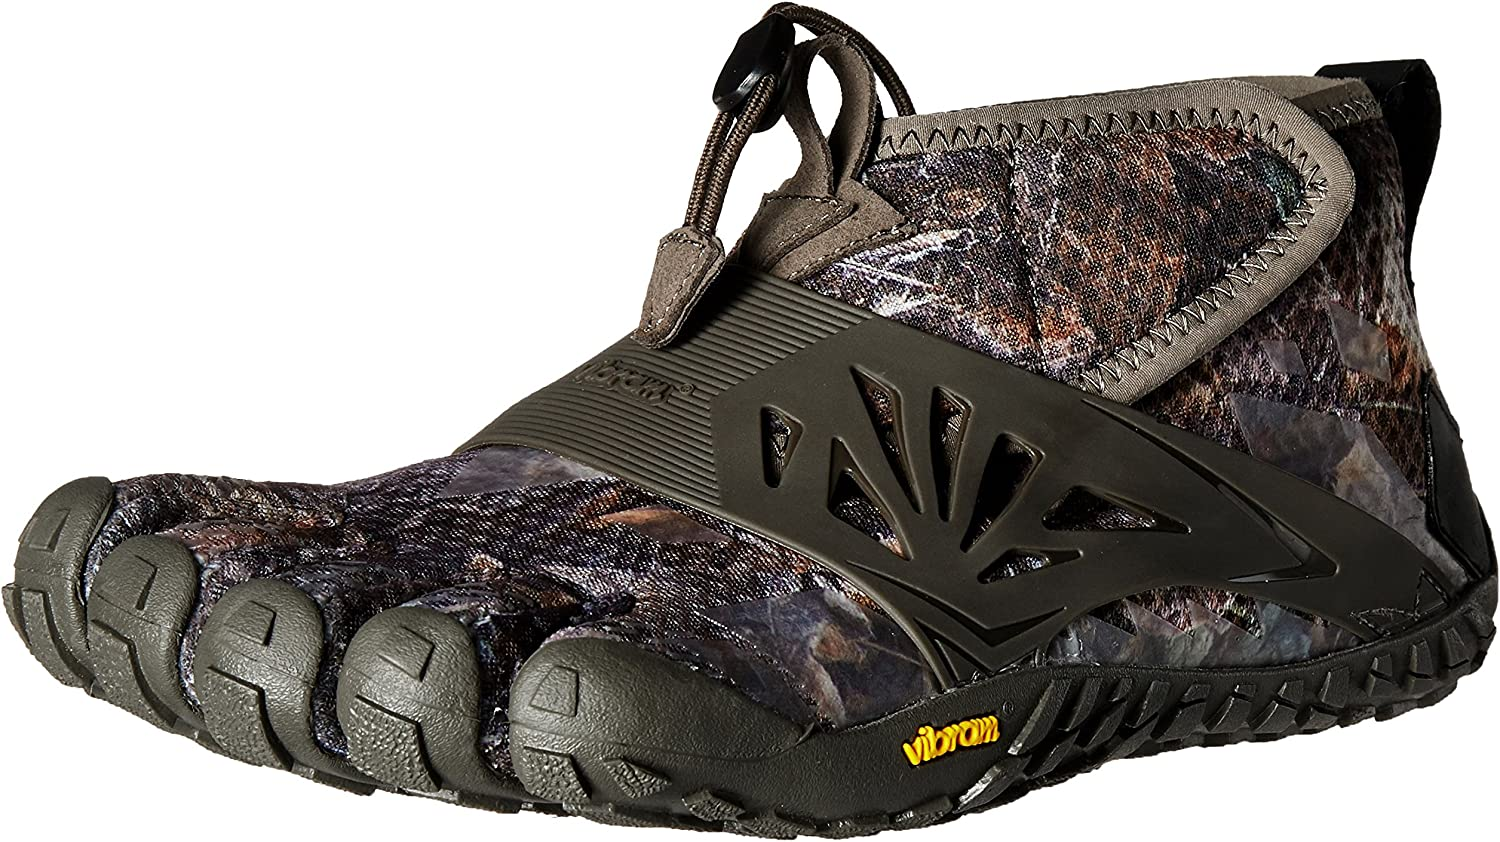 Vibram Men s Spyridon Mr Elite Trail Running Shoe